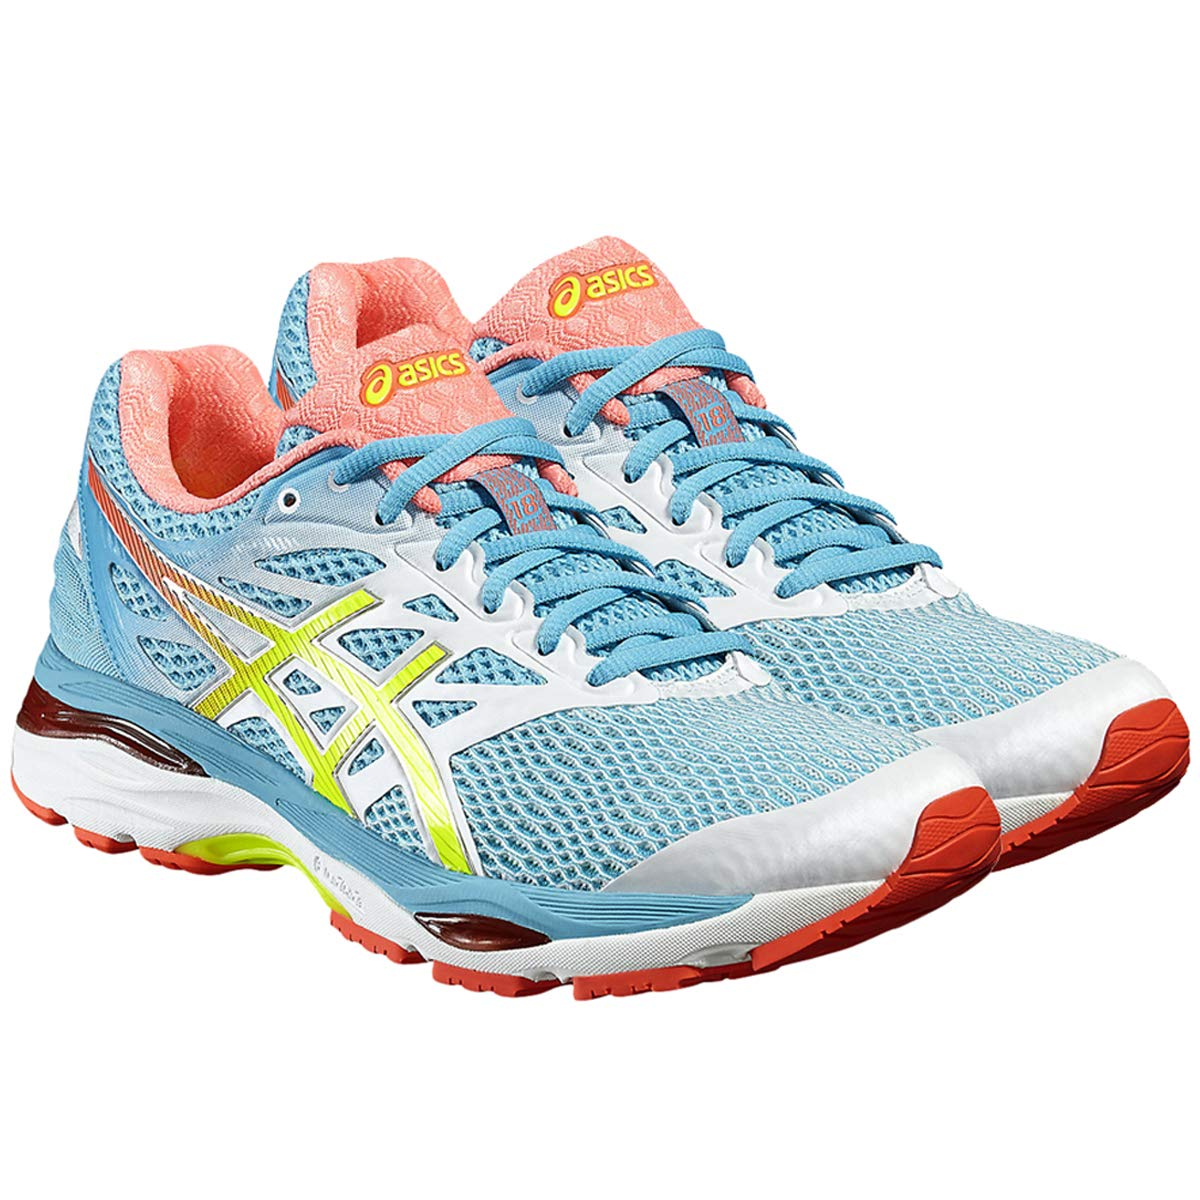 Asics Multi Color Running Shoe For Women price in UAE